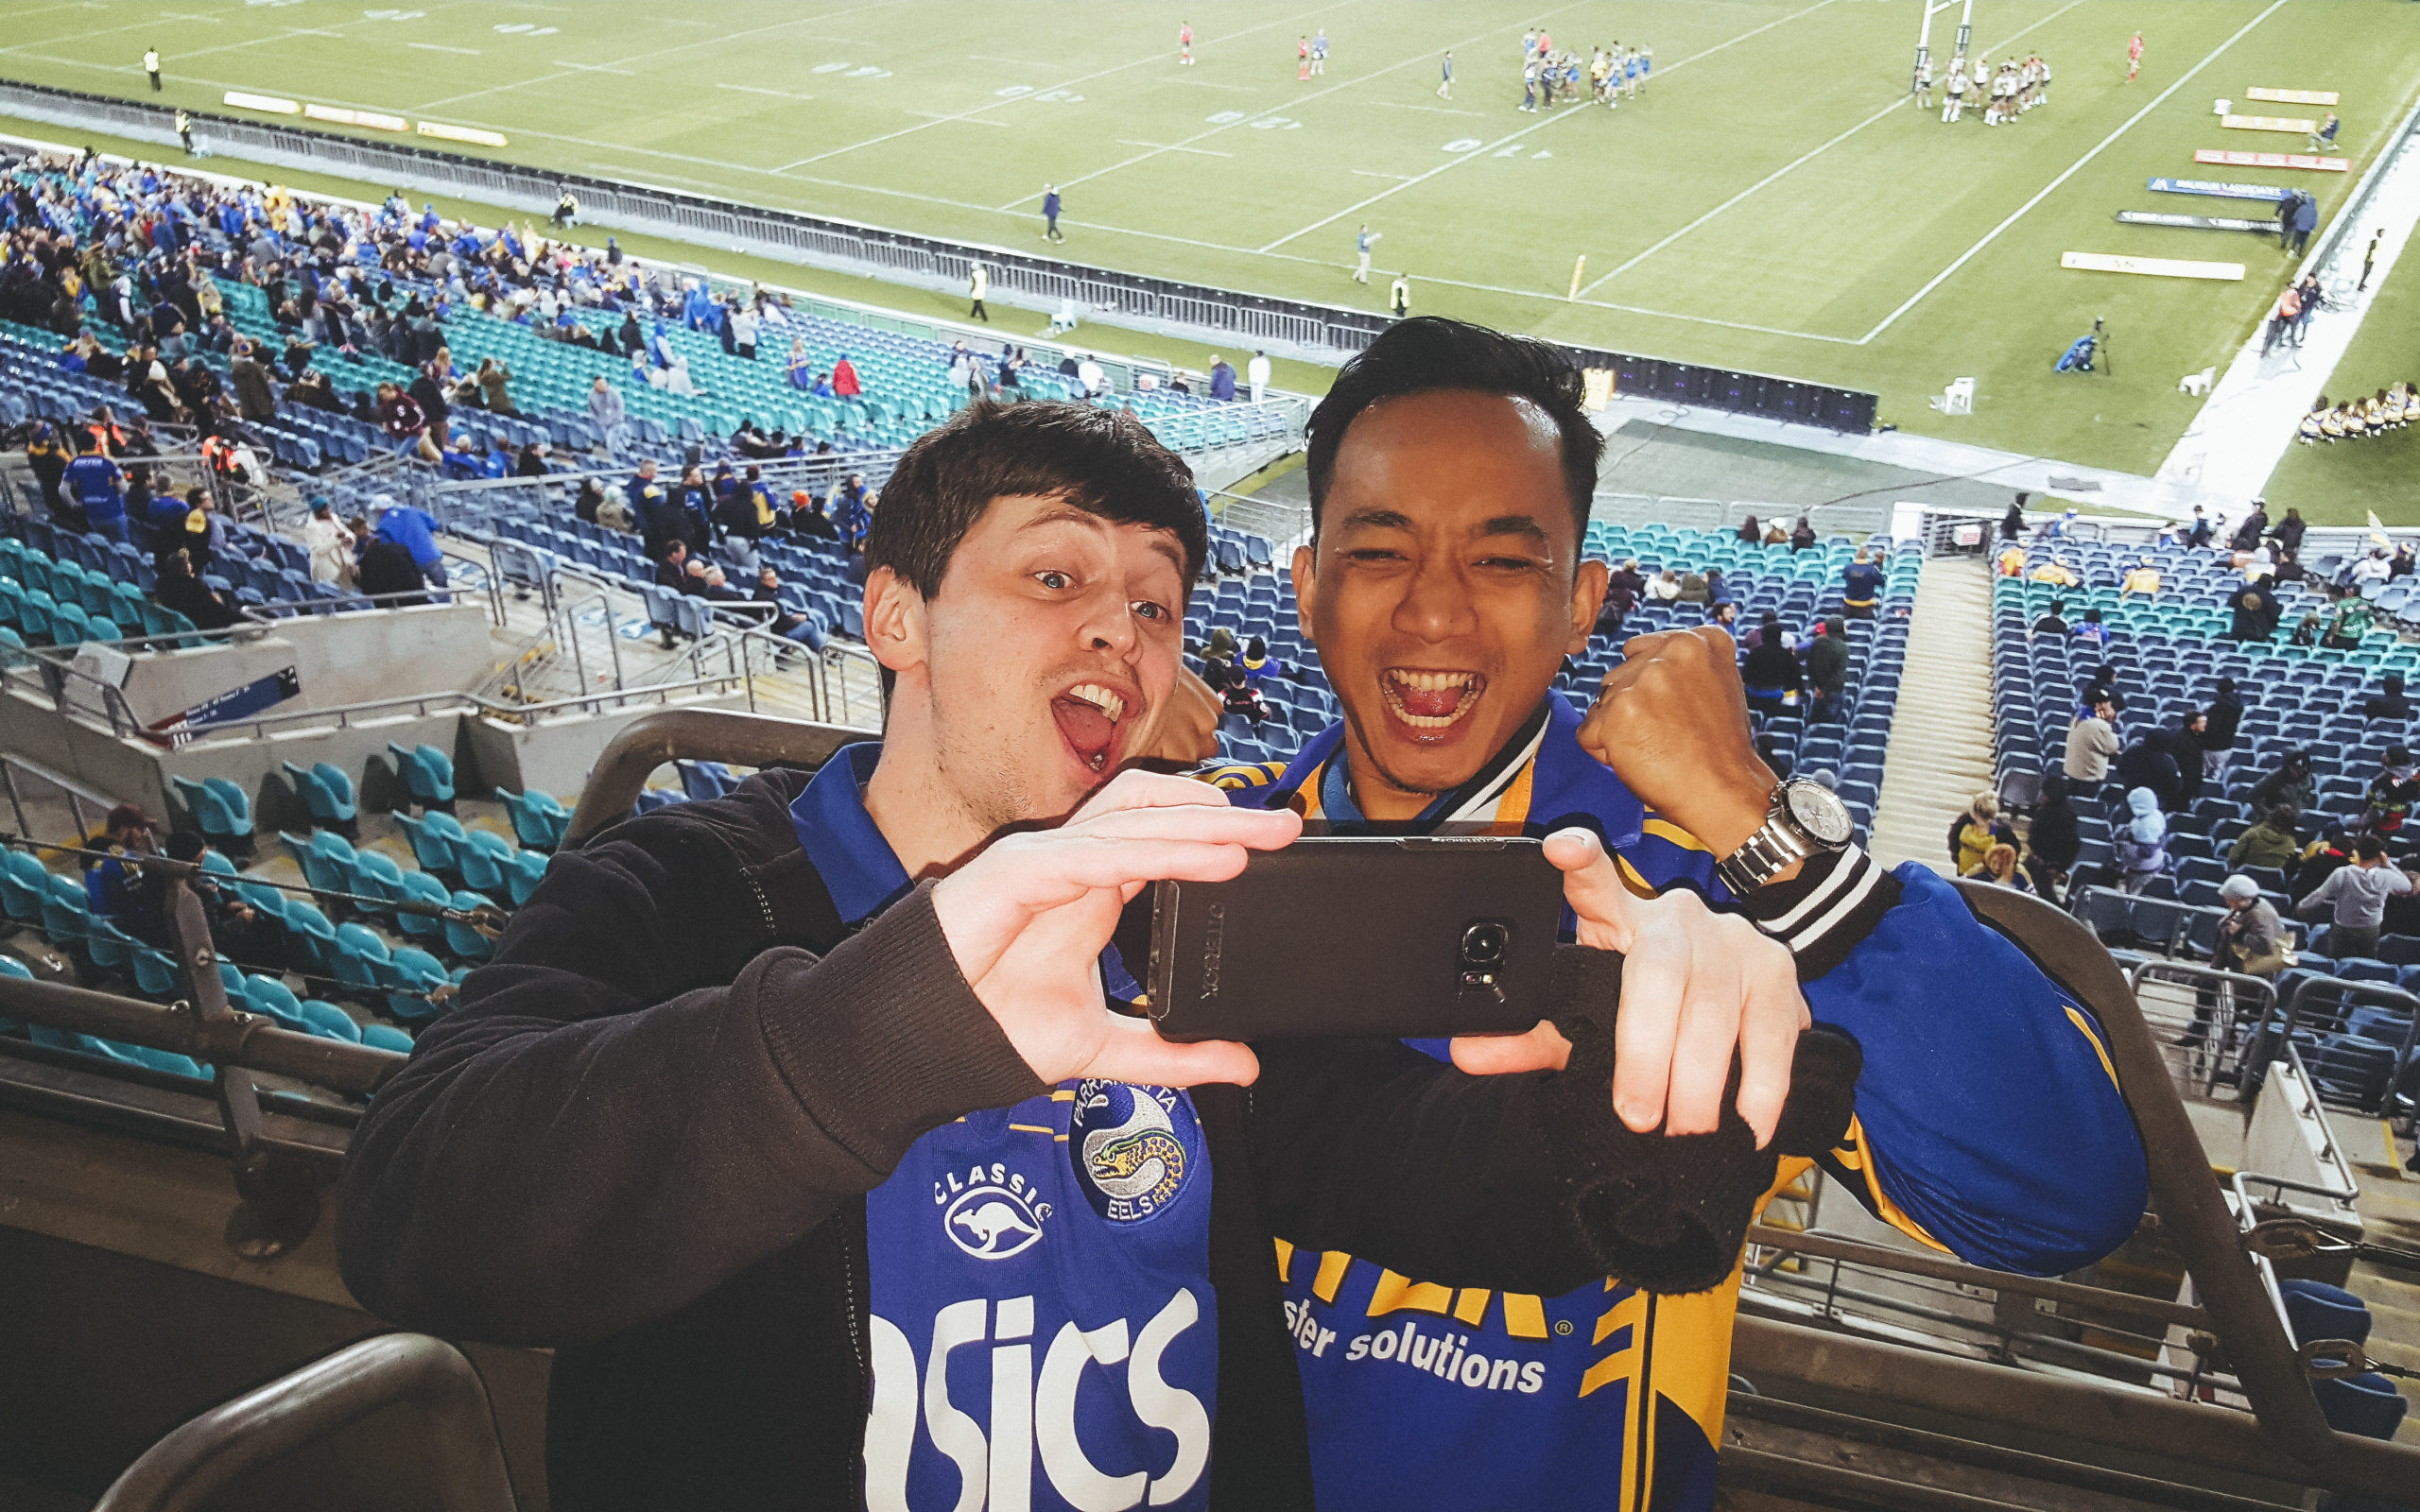 Louie Rosales and Gareth White cheer on the Parramatta Eels